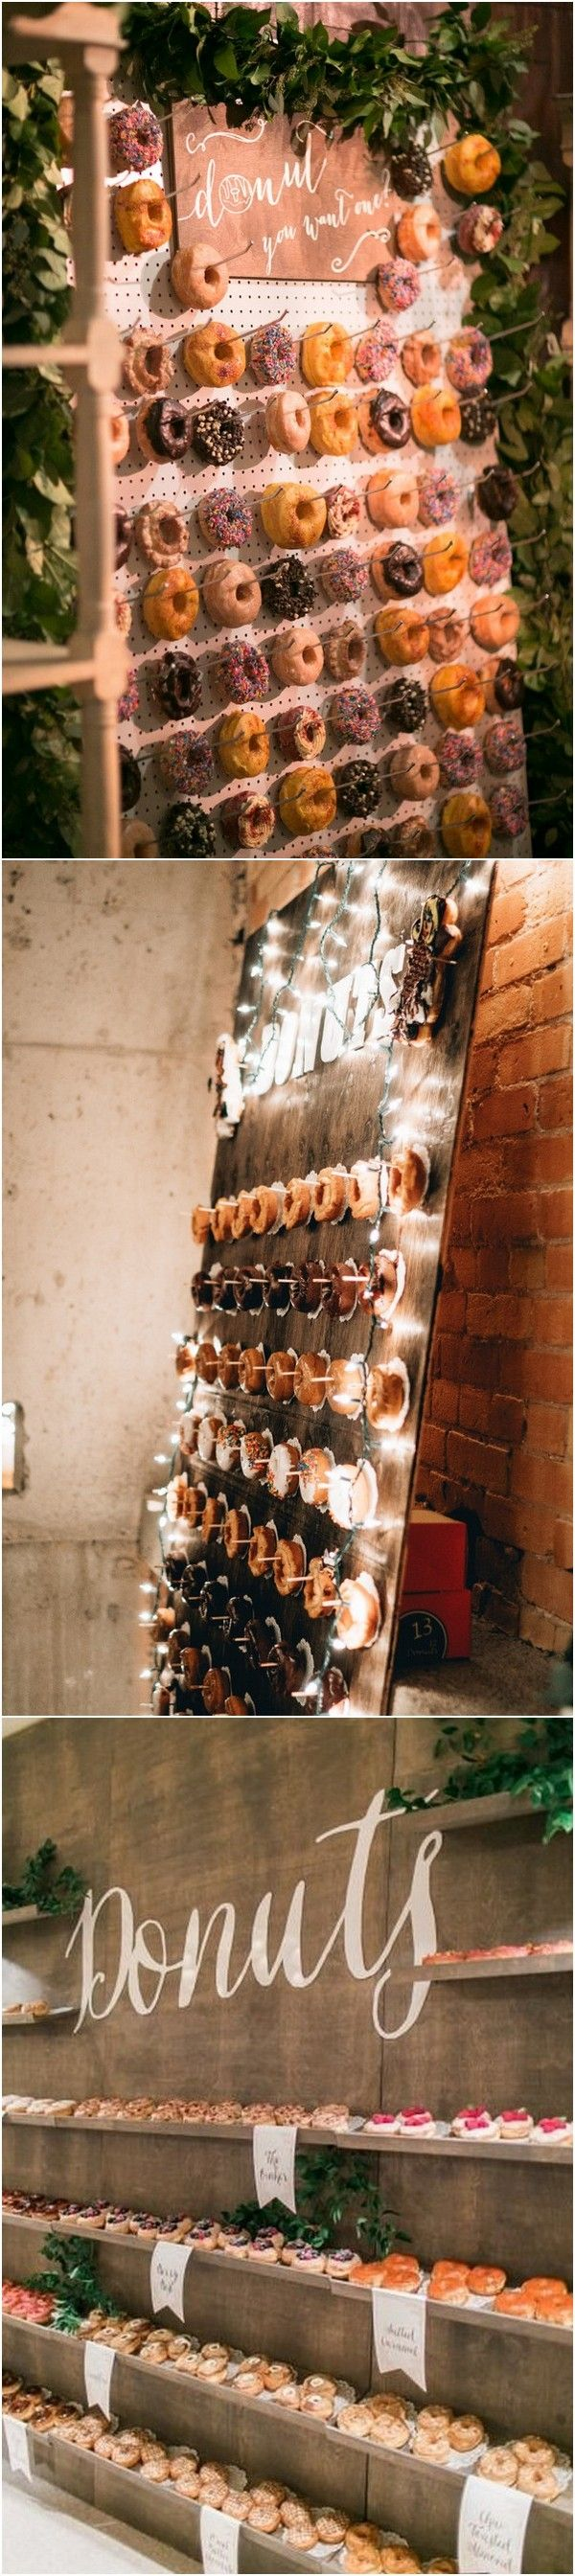 rustic wedding decoration ideas with donuts wall